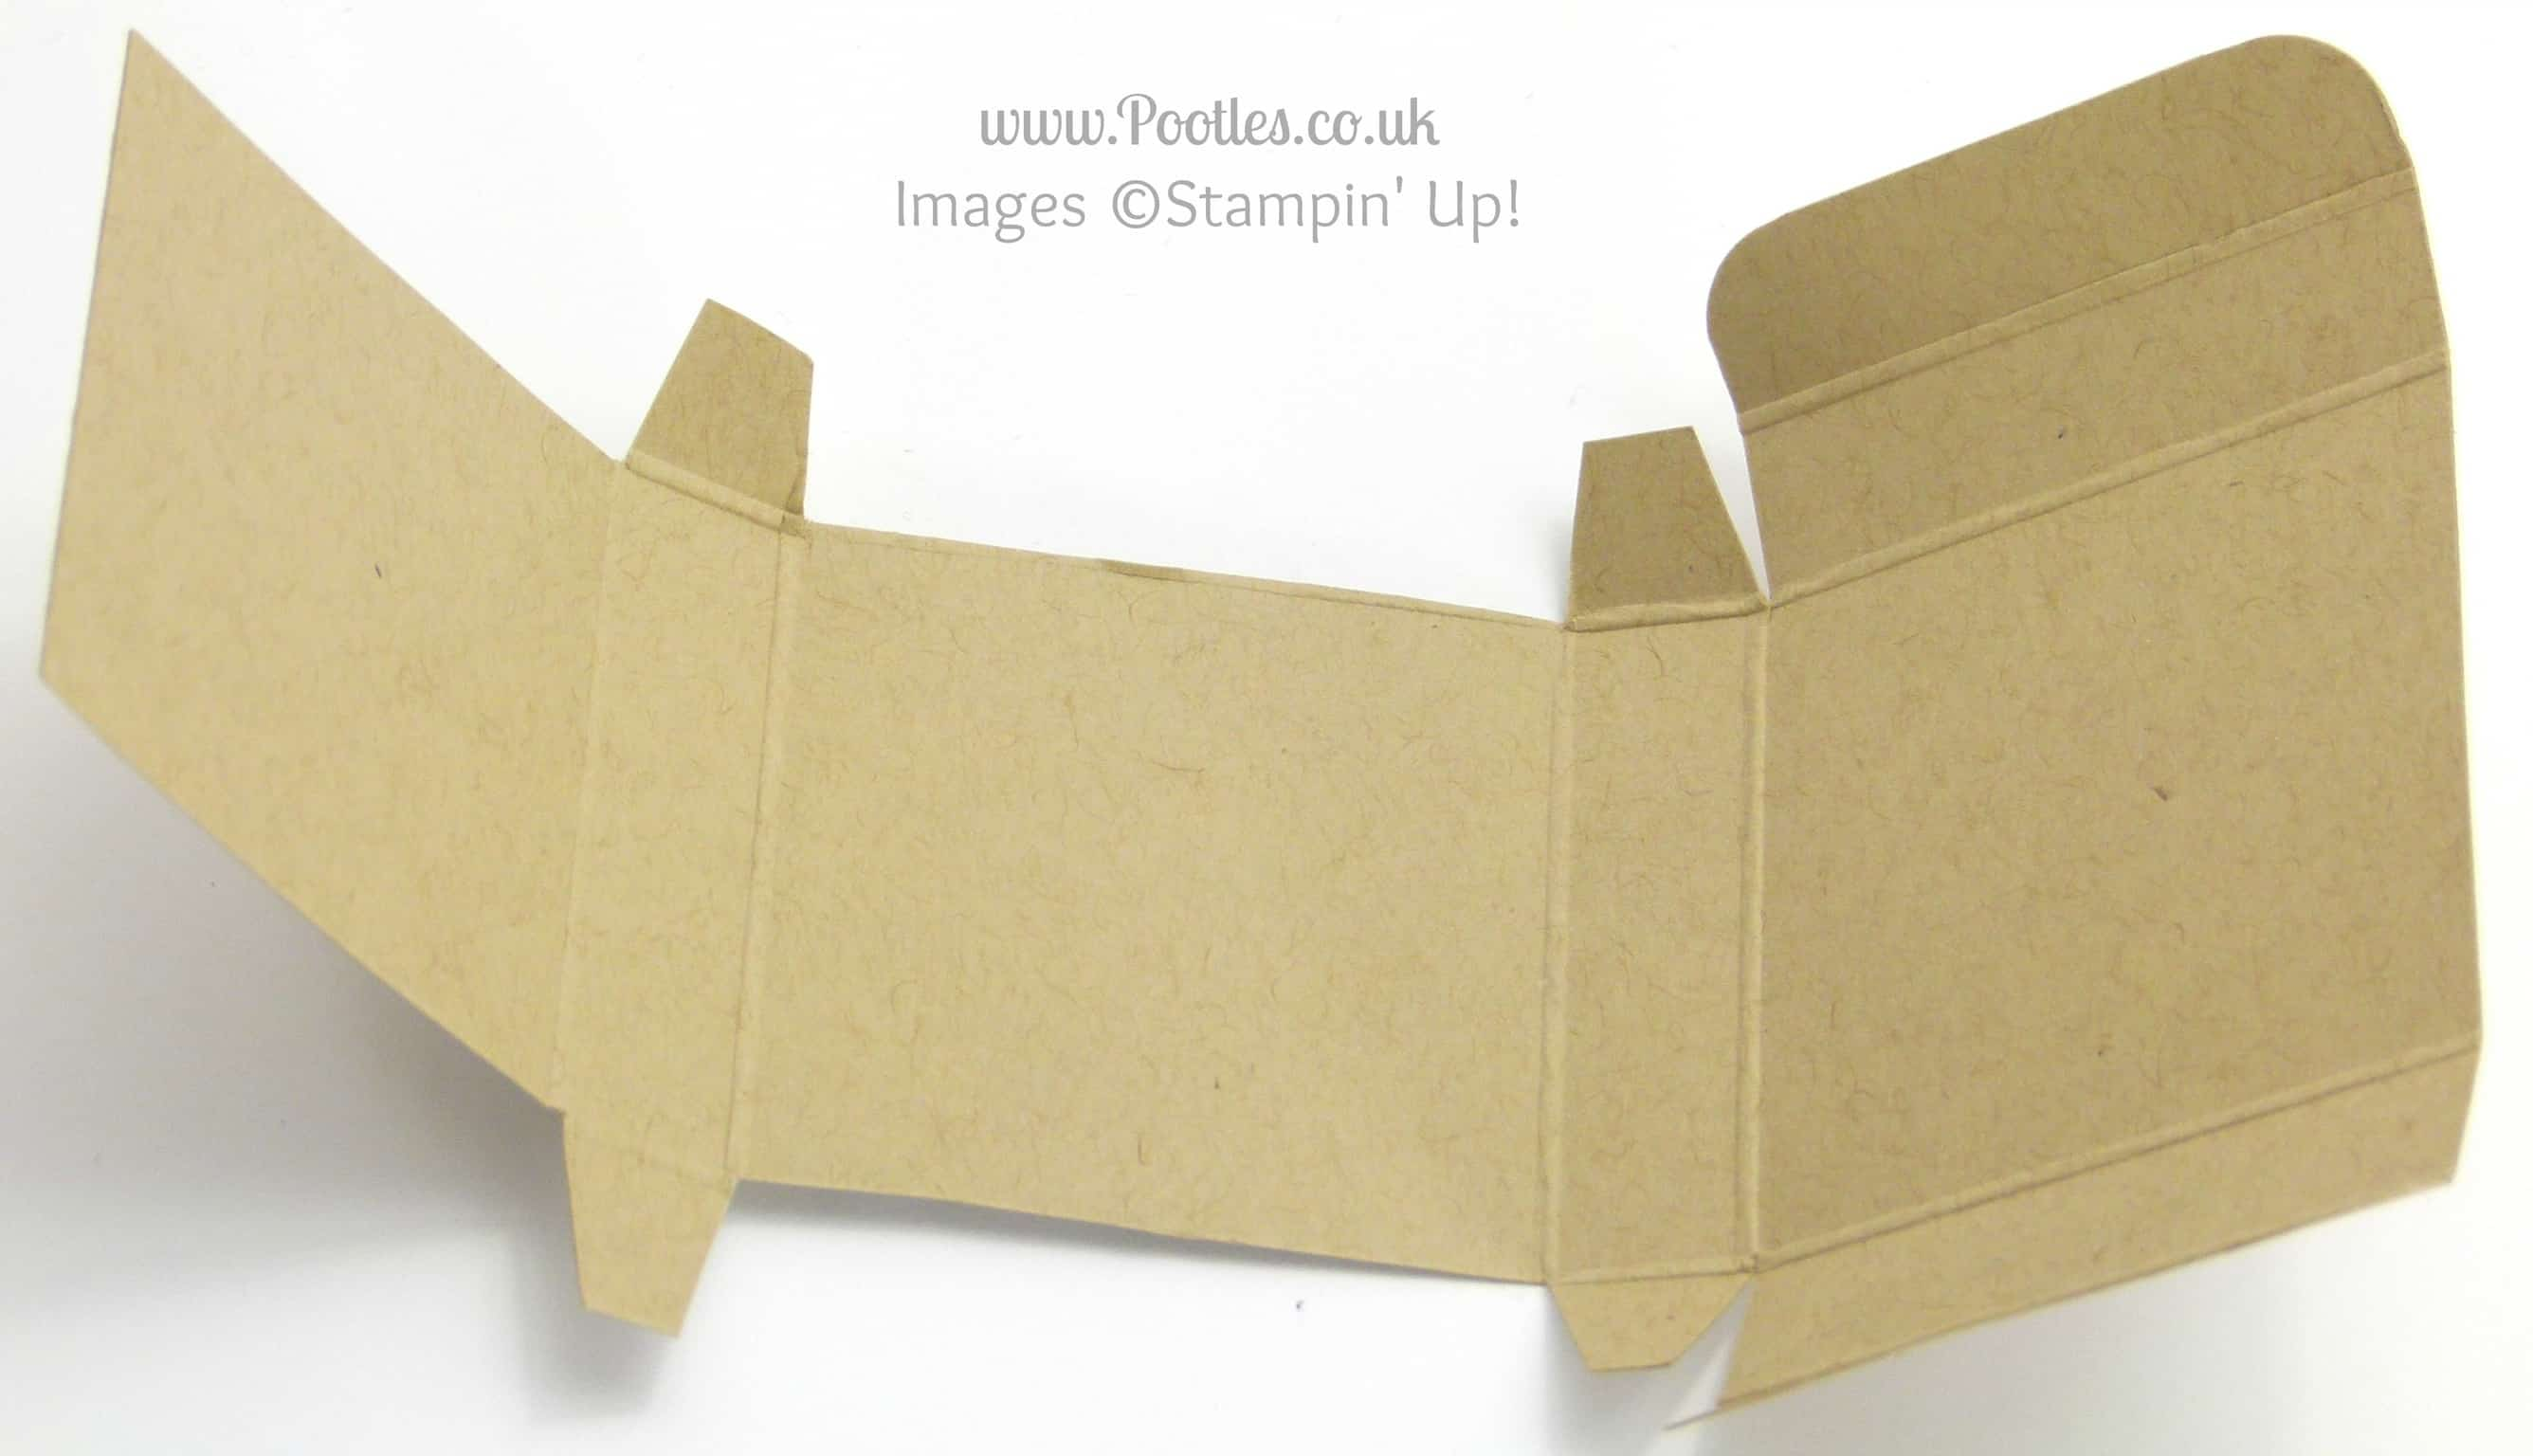 Stampin' up! UK Independent Demonstrator Pootles - No Stick Box Tutorial Unfolded